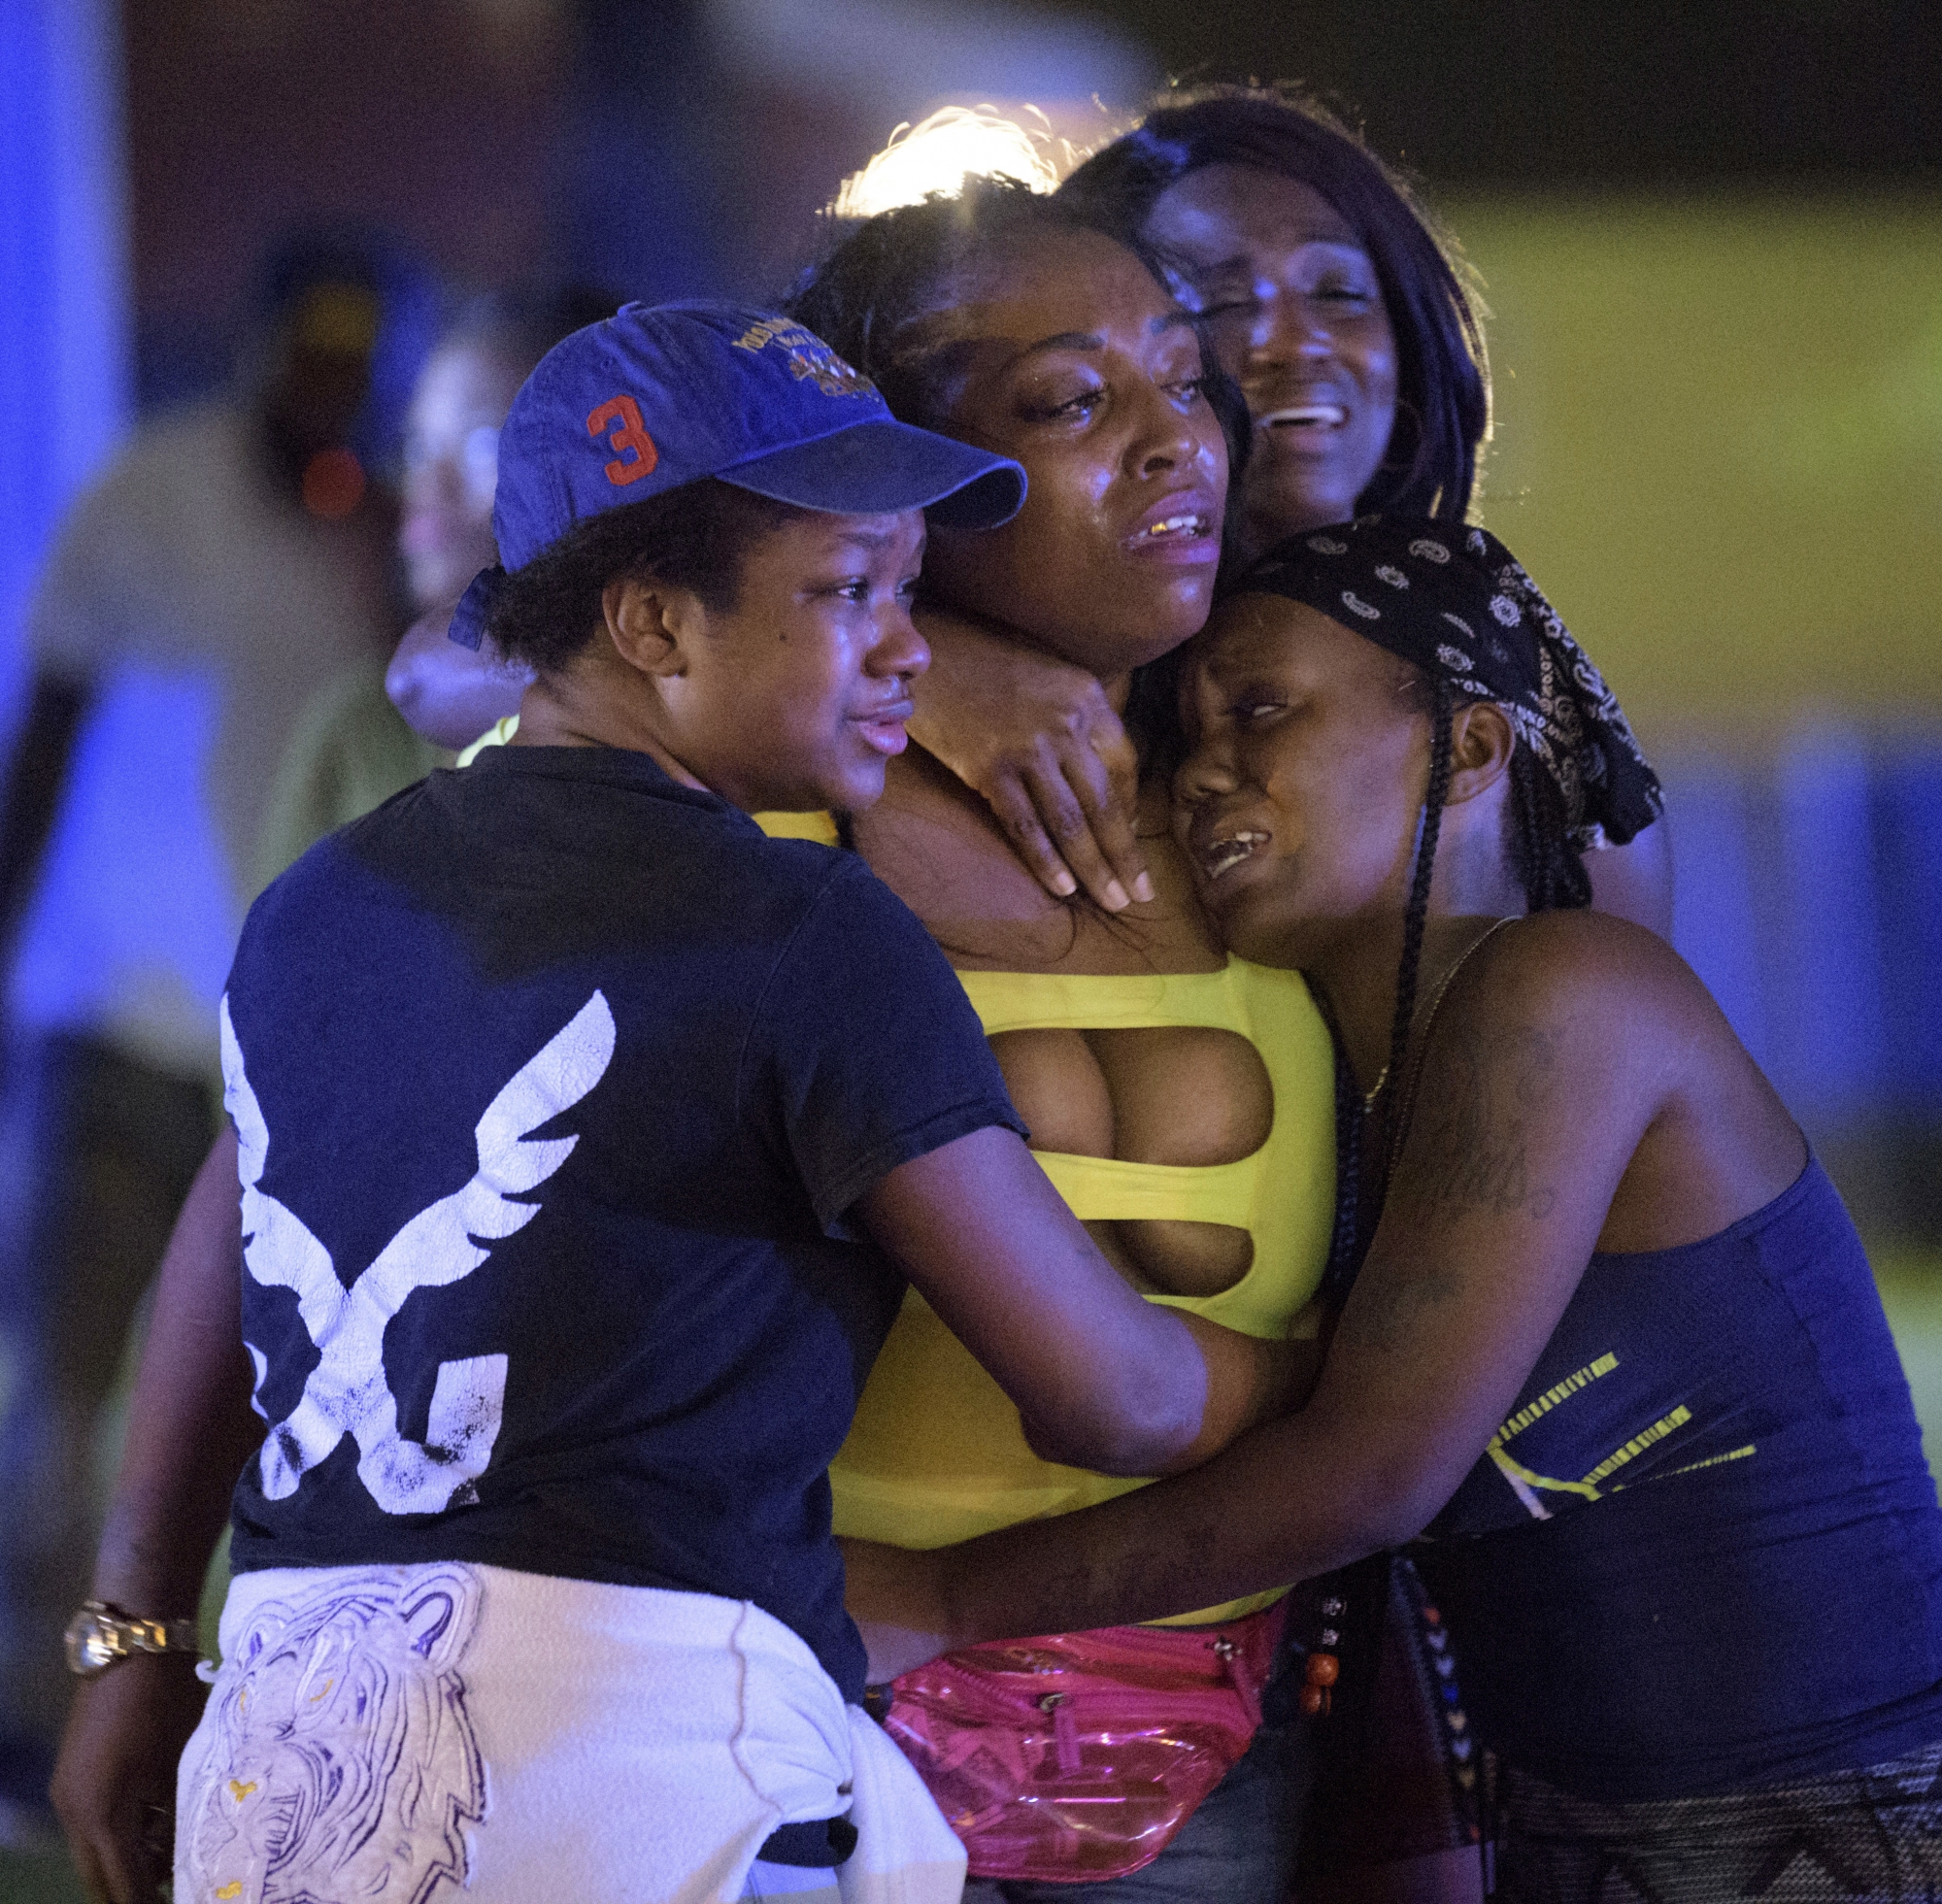 Chicago Shooting Three Killed And Gunman Shot Dead After: 3 Dead, 7 Wounded After Gunmen In New Orleans Fire On